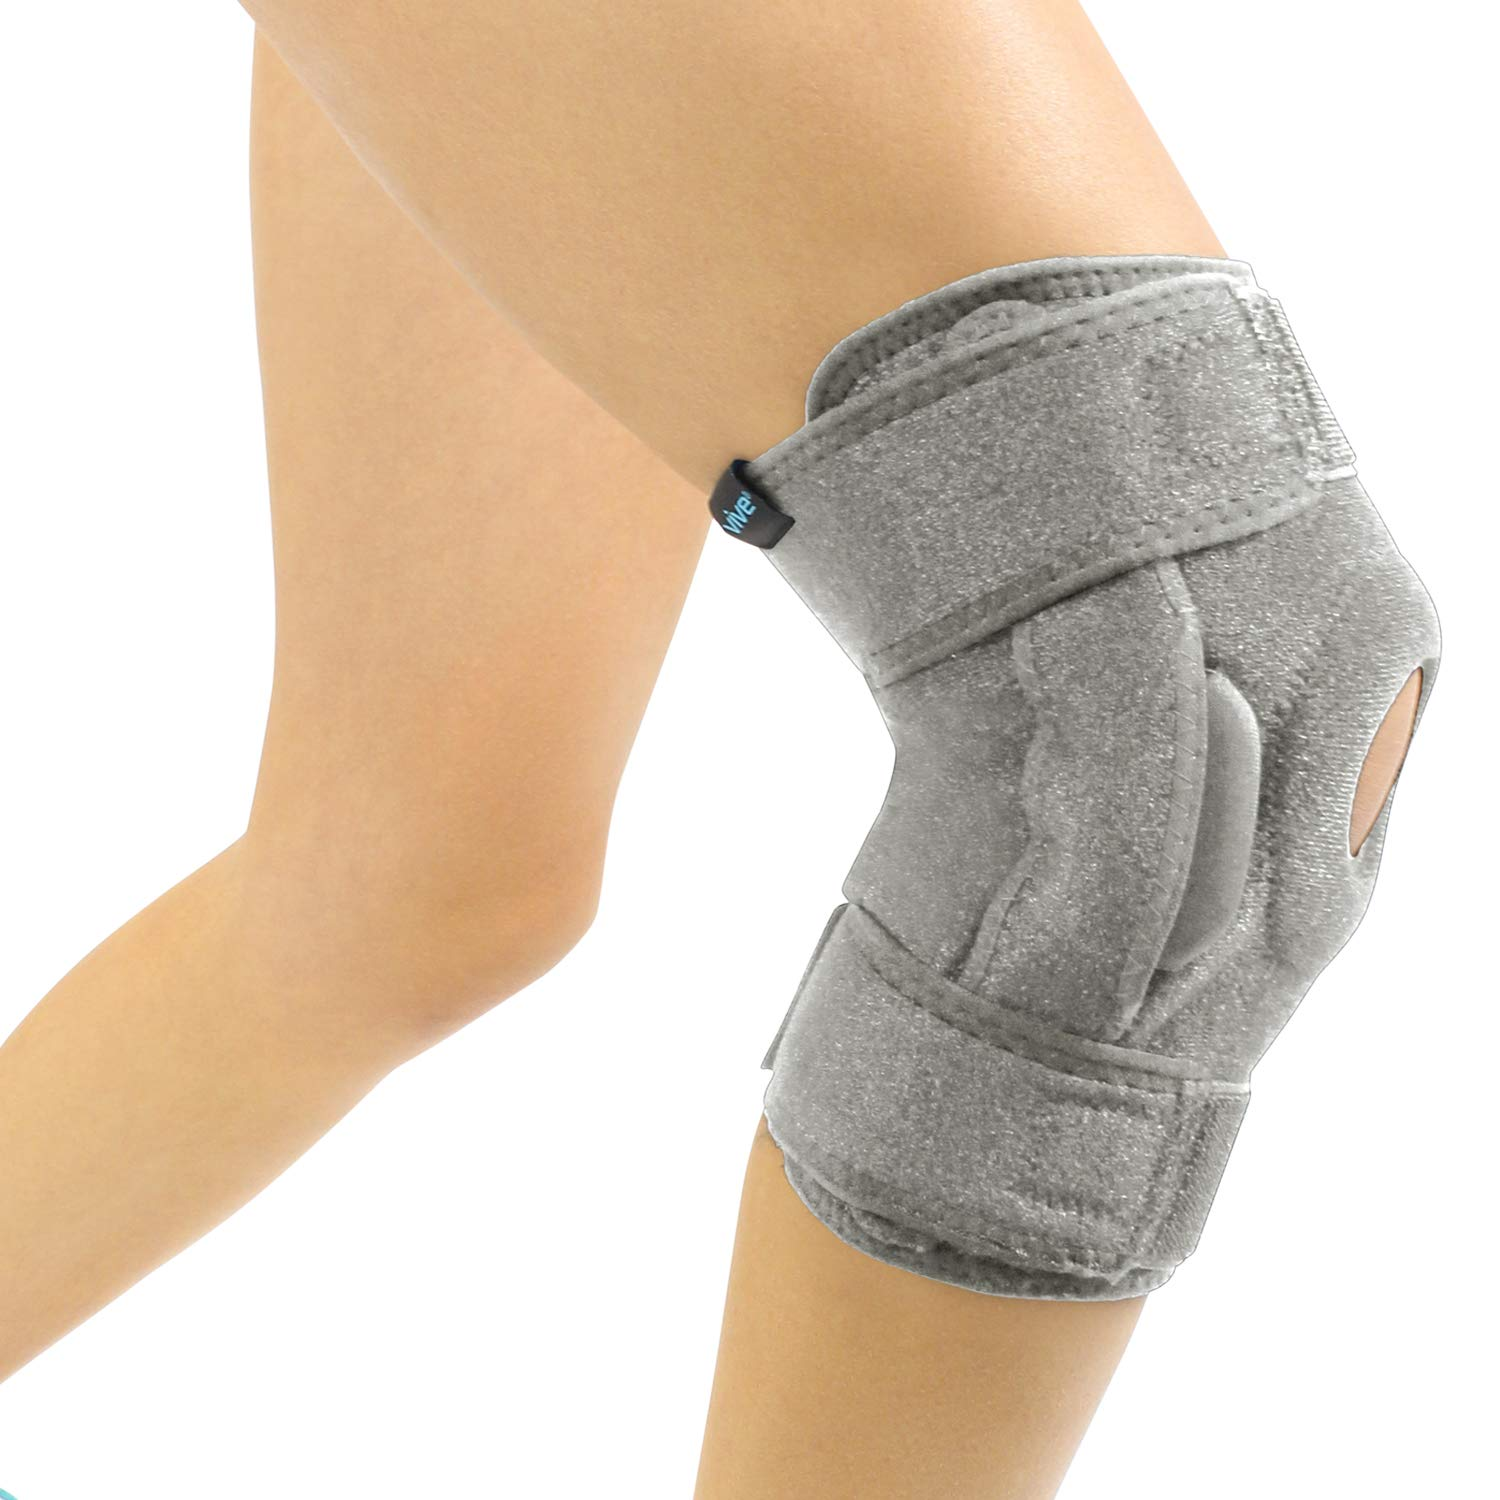 Vive Hinged Knee Brace - Open Patella Support Wrap for Women, Men - Compression for ACL, MCL, Torn Meniscus Ligament and Tendonitis - for Running, Athletic Tear and Arthritis Joint - Adjustable Strap